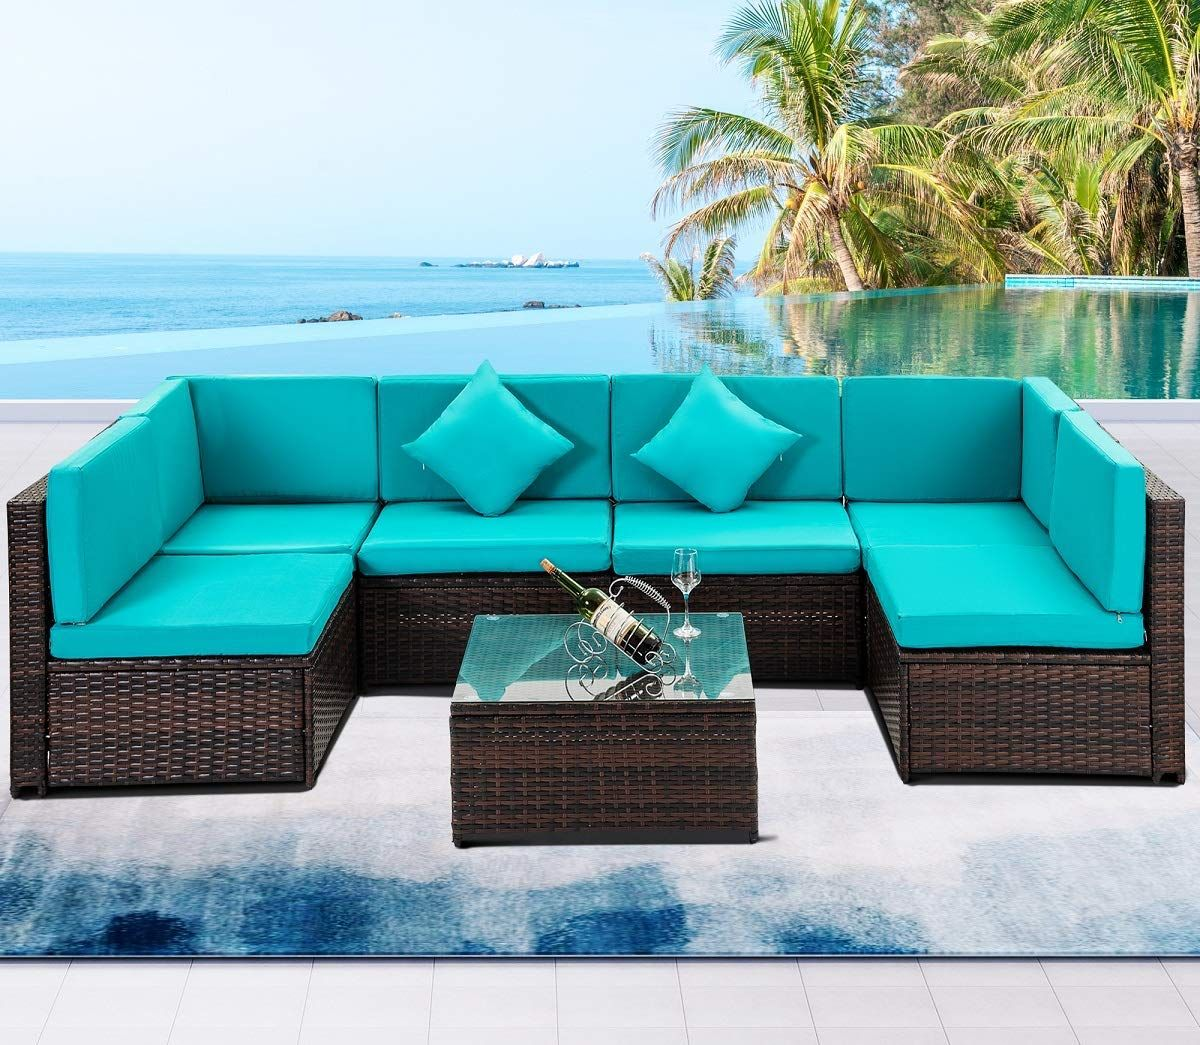 7 Pcs Outdoor Rattan Wicker Furniture Set Garden Patio Sectional Sofa With Cushioned Seat And Glass Coffe Garden Patio Furniture Patio Sectional Green Cushions